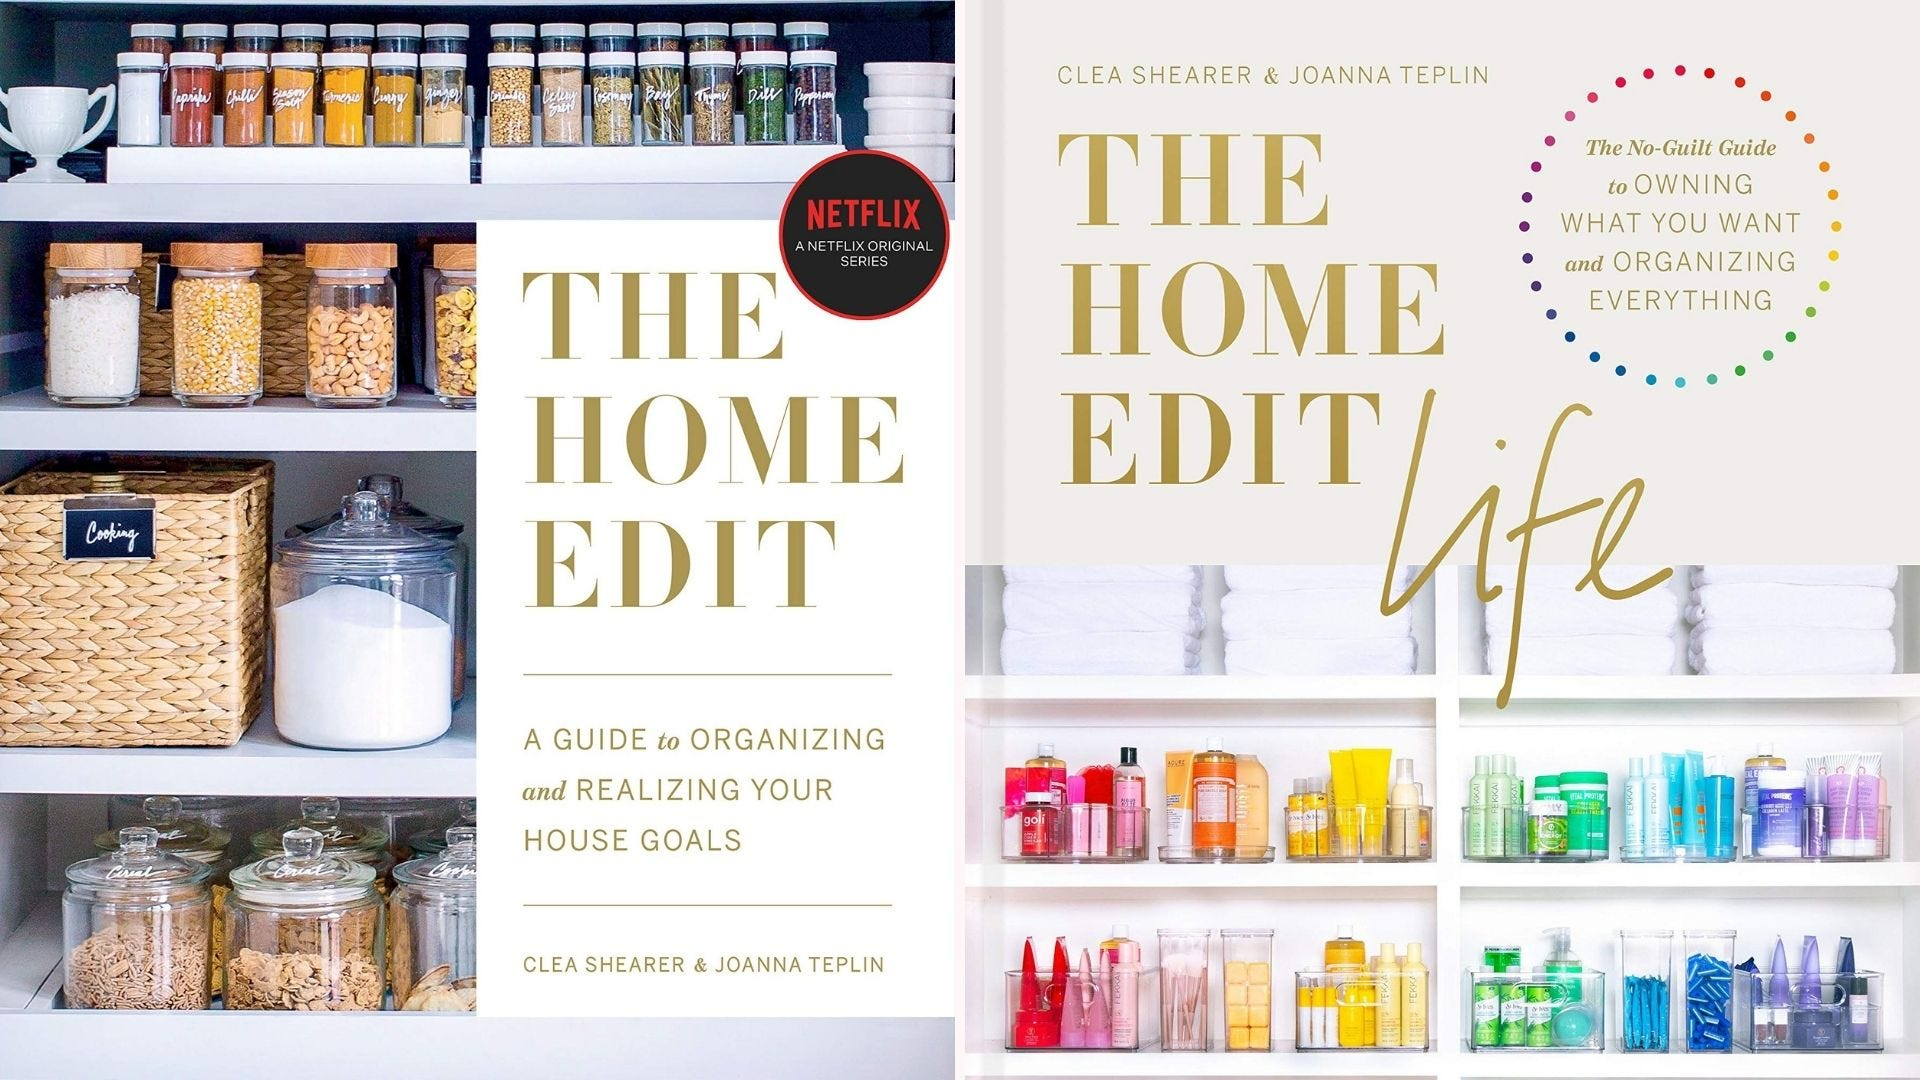 The covers of The Home Edit and The Home Edit Life books.